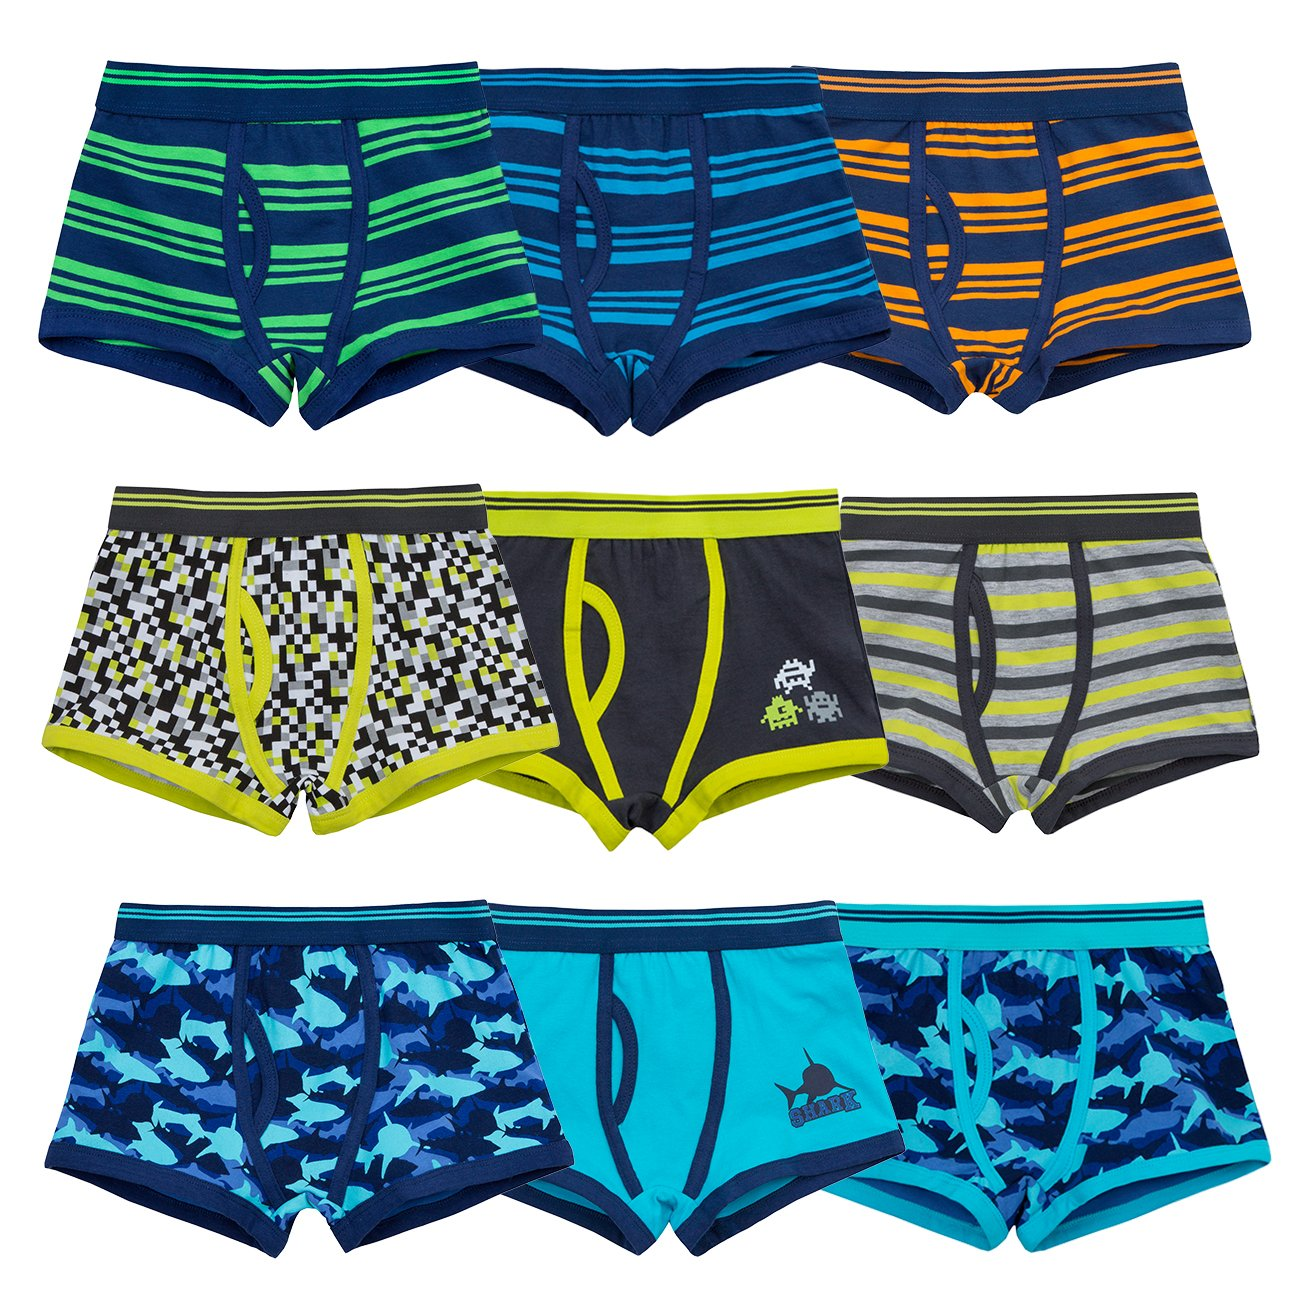 4 KIDZ Multi Pack Boys Trunk Fit Boxers Underwear Cotton Shorts Shark Stripes 2-13 yrs 9 Pack